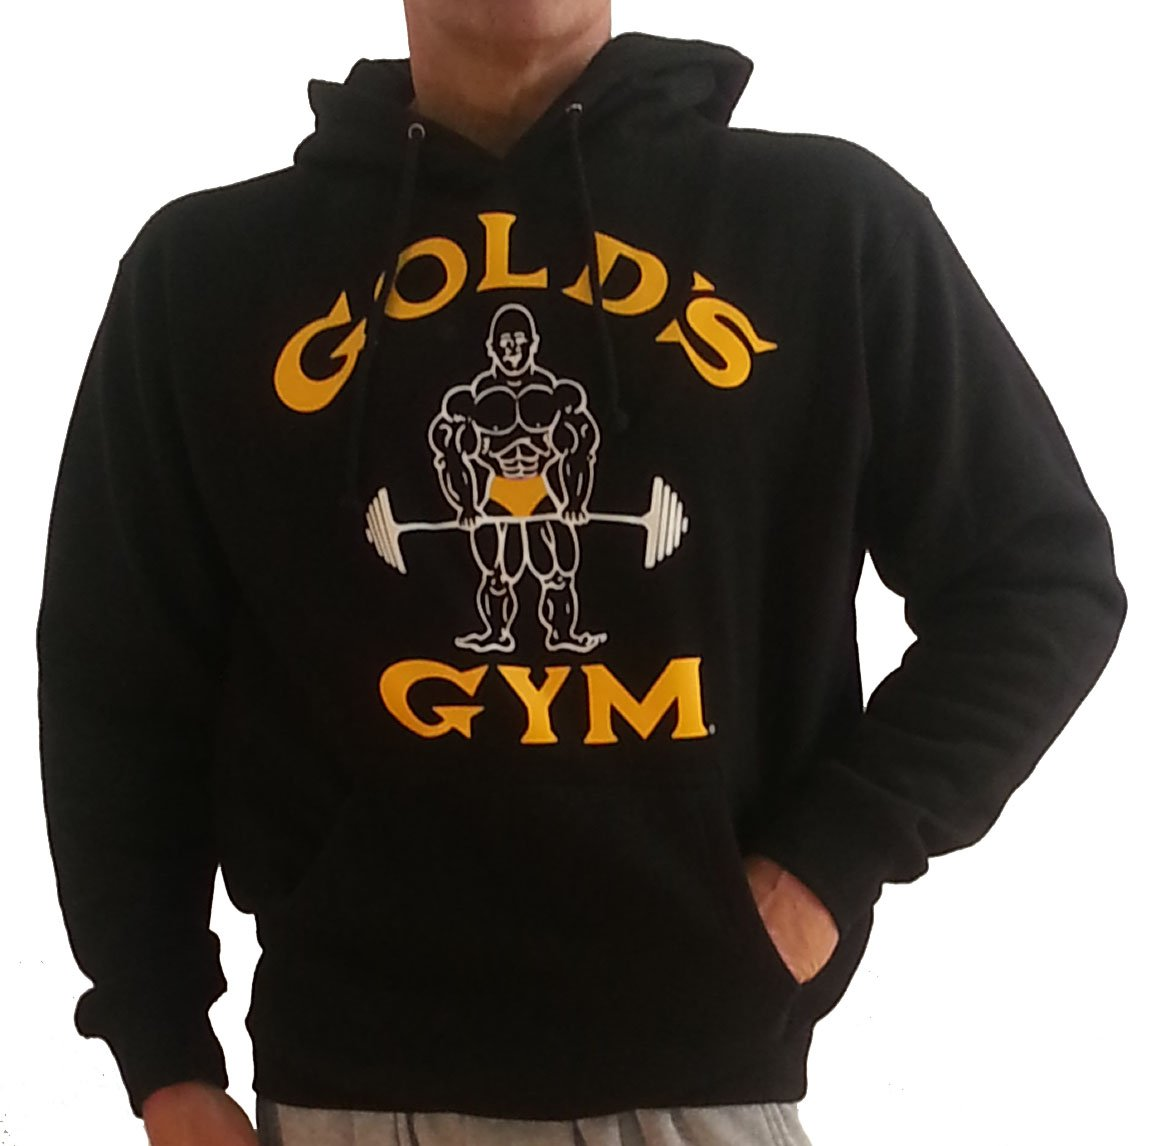 Golds Gym Sweatshirt Hoodie XL Weightlifting logo | eBay